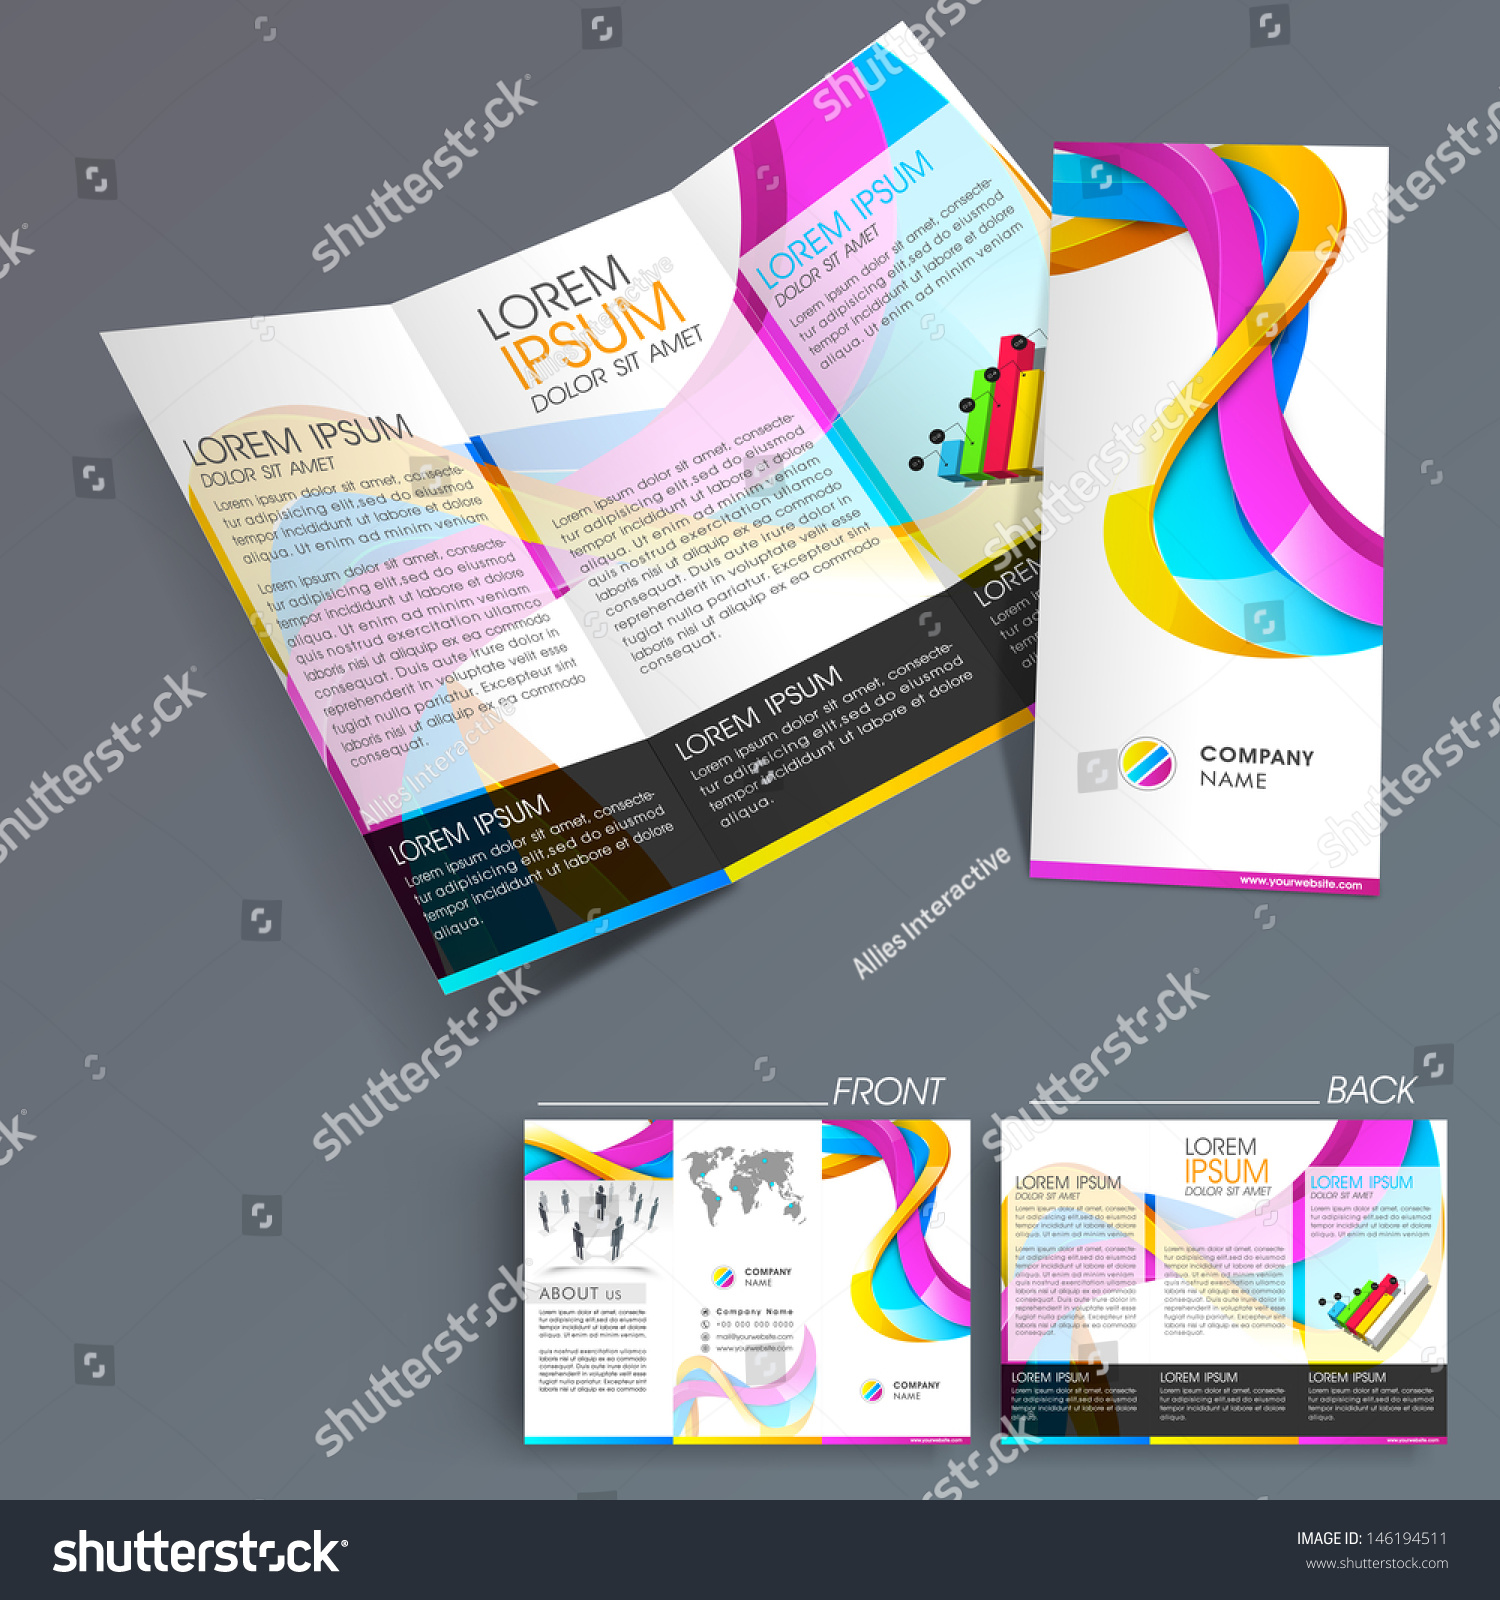 professional business three fold flyer template stock vector professional business three fold flyer template corporate brochure or cover design can be use